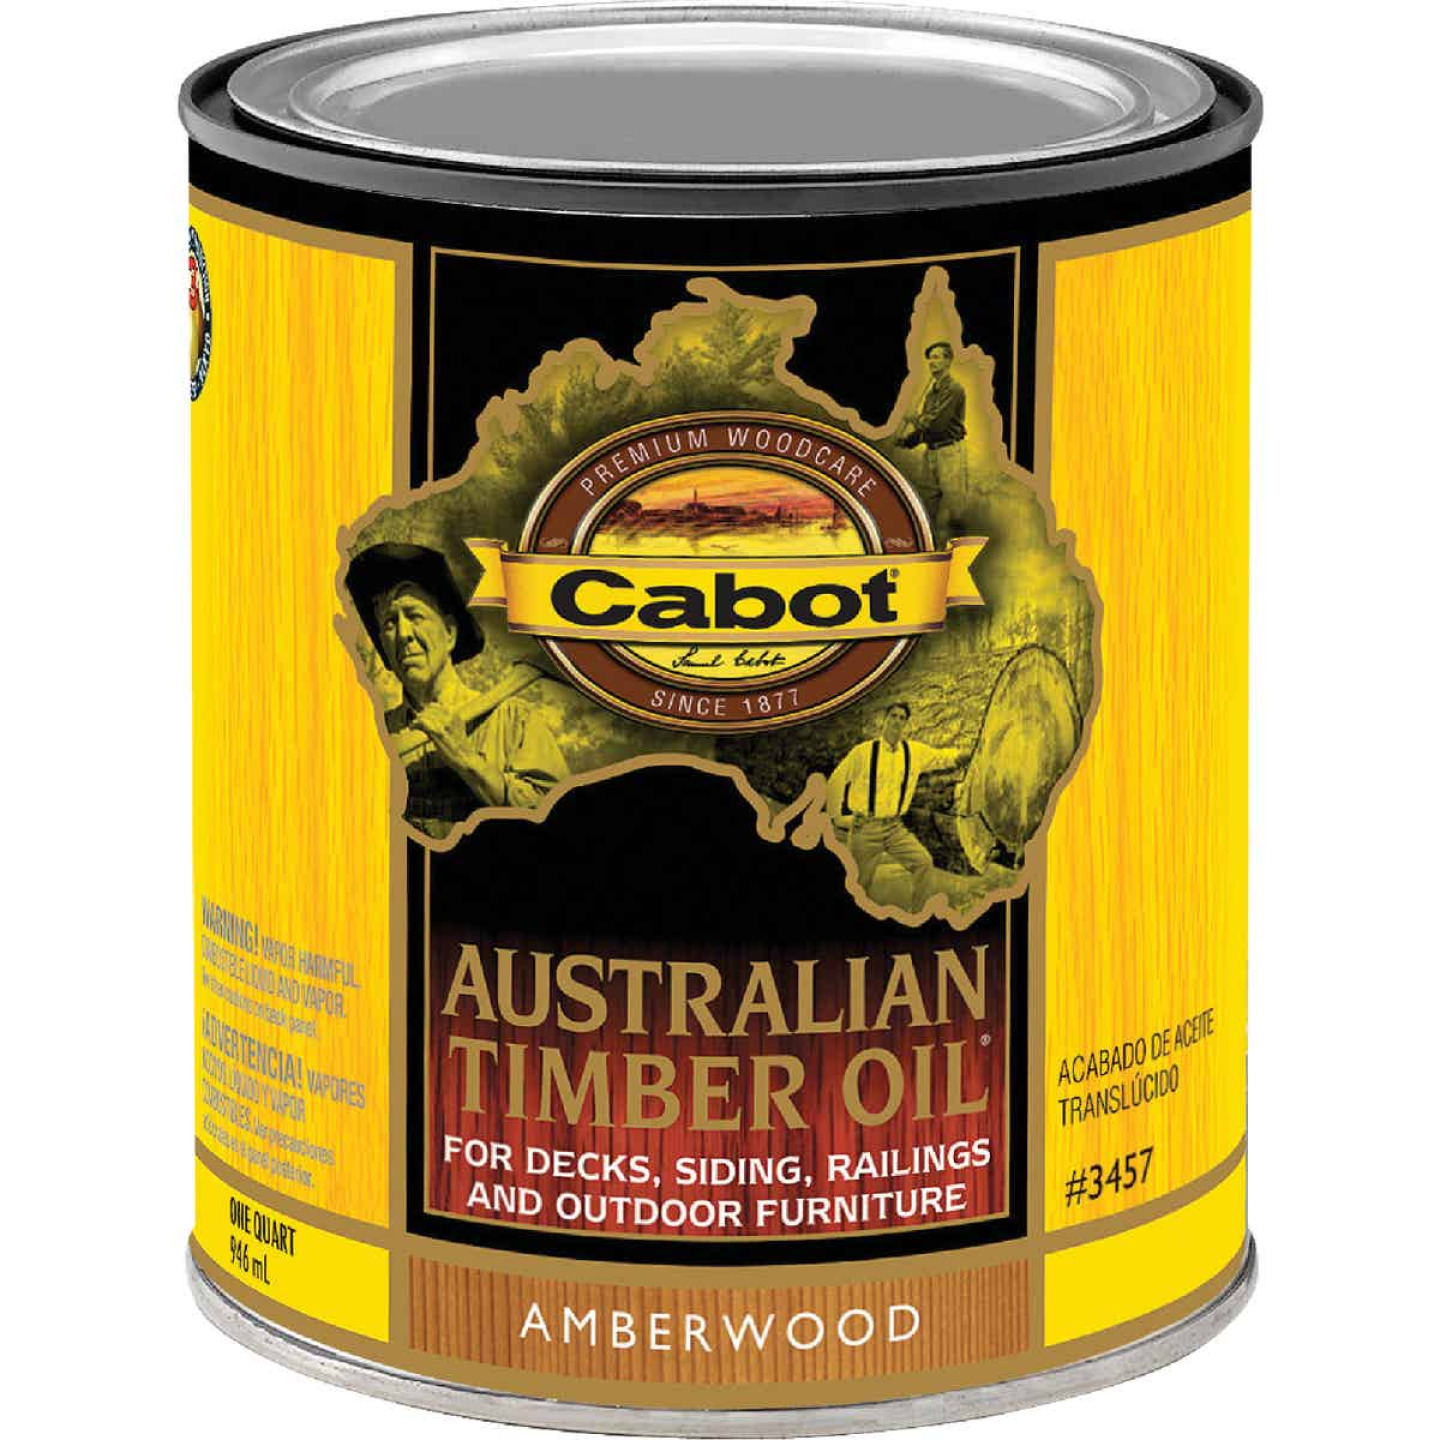 Cabot Australian Timber Oil Translucent Exterior Oil Finish, Amberwood, 1 Qt. Image 1